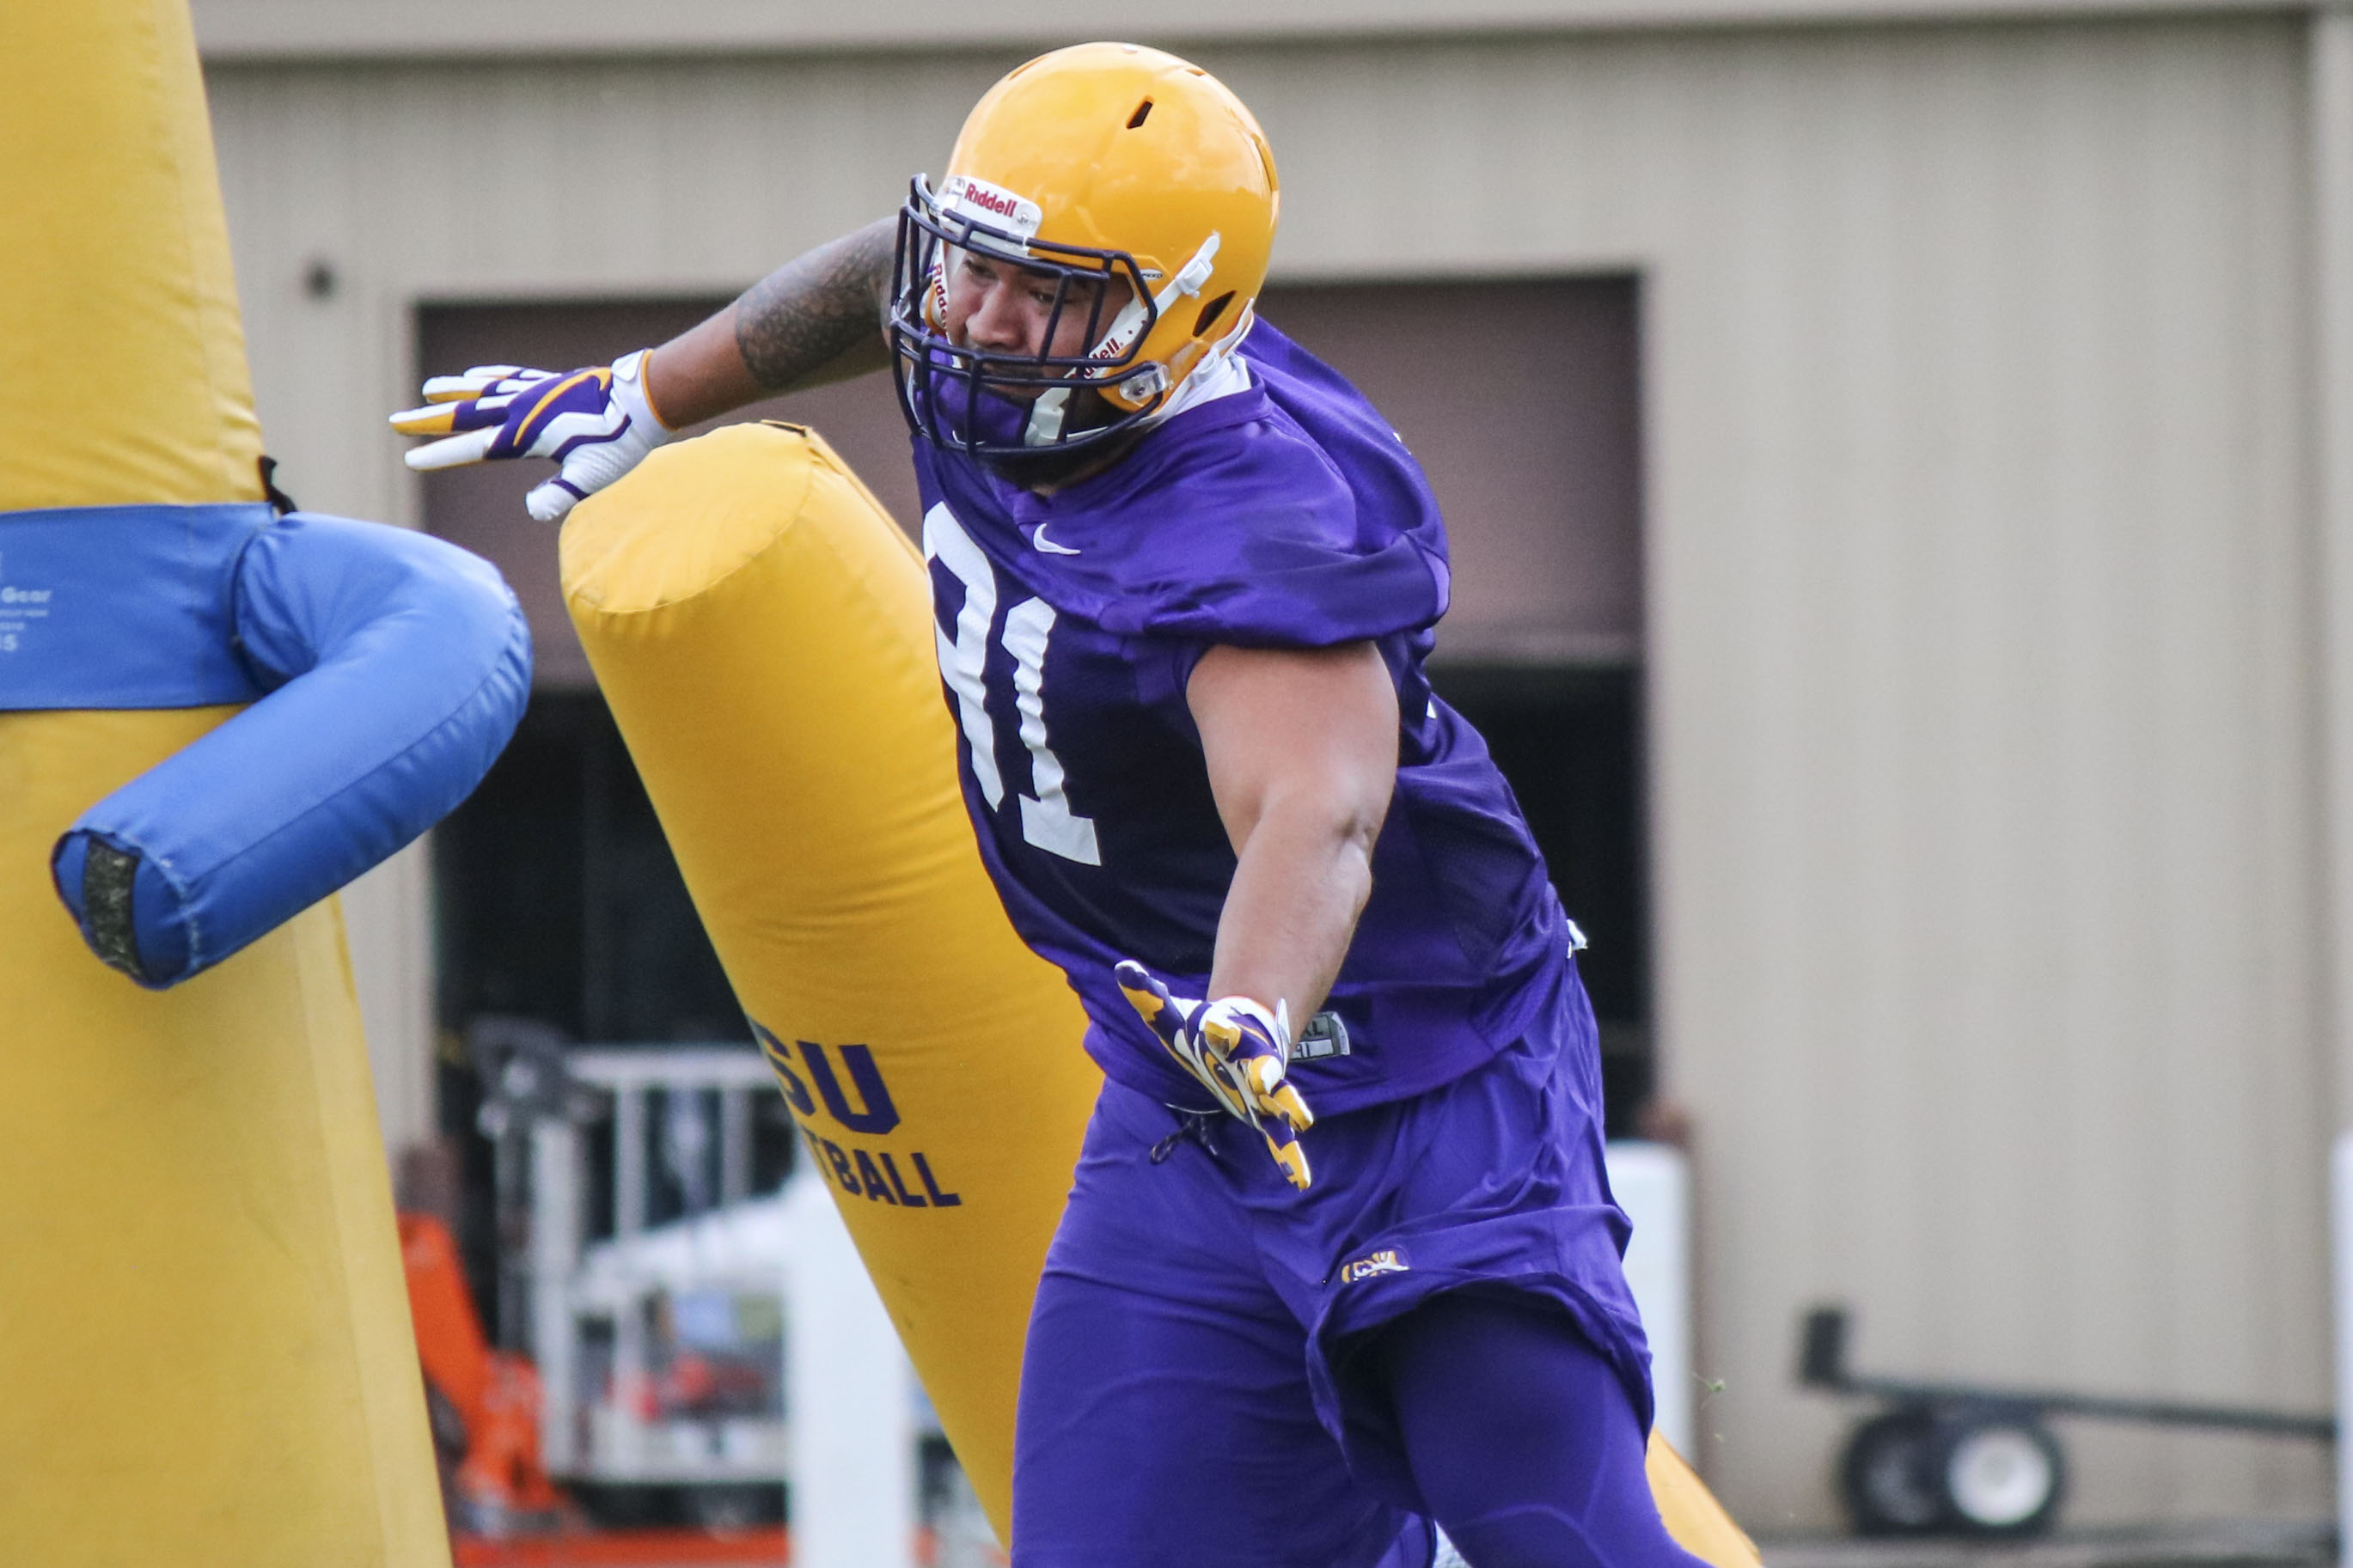 LSU defensive end Breiden Fehoko (91) at the first LSU fall practice in Baton Rouge, La. on Saturday, August 4, 2018. (Photo by Christa Moran)